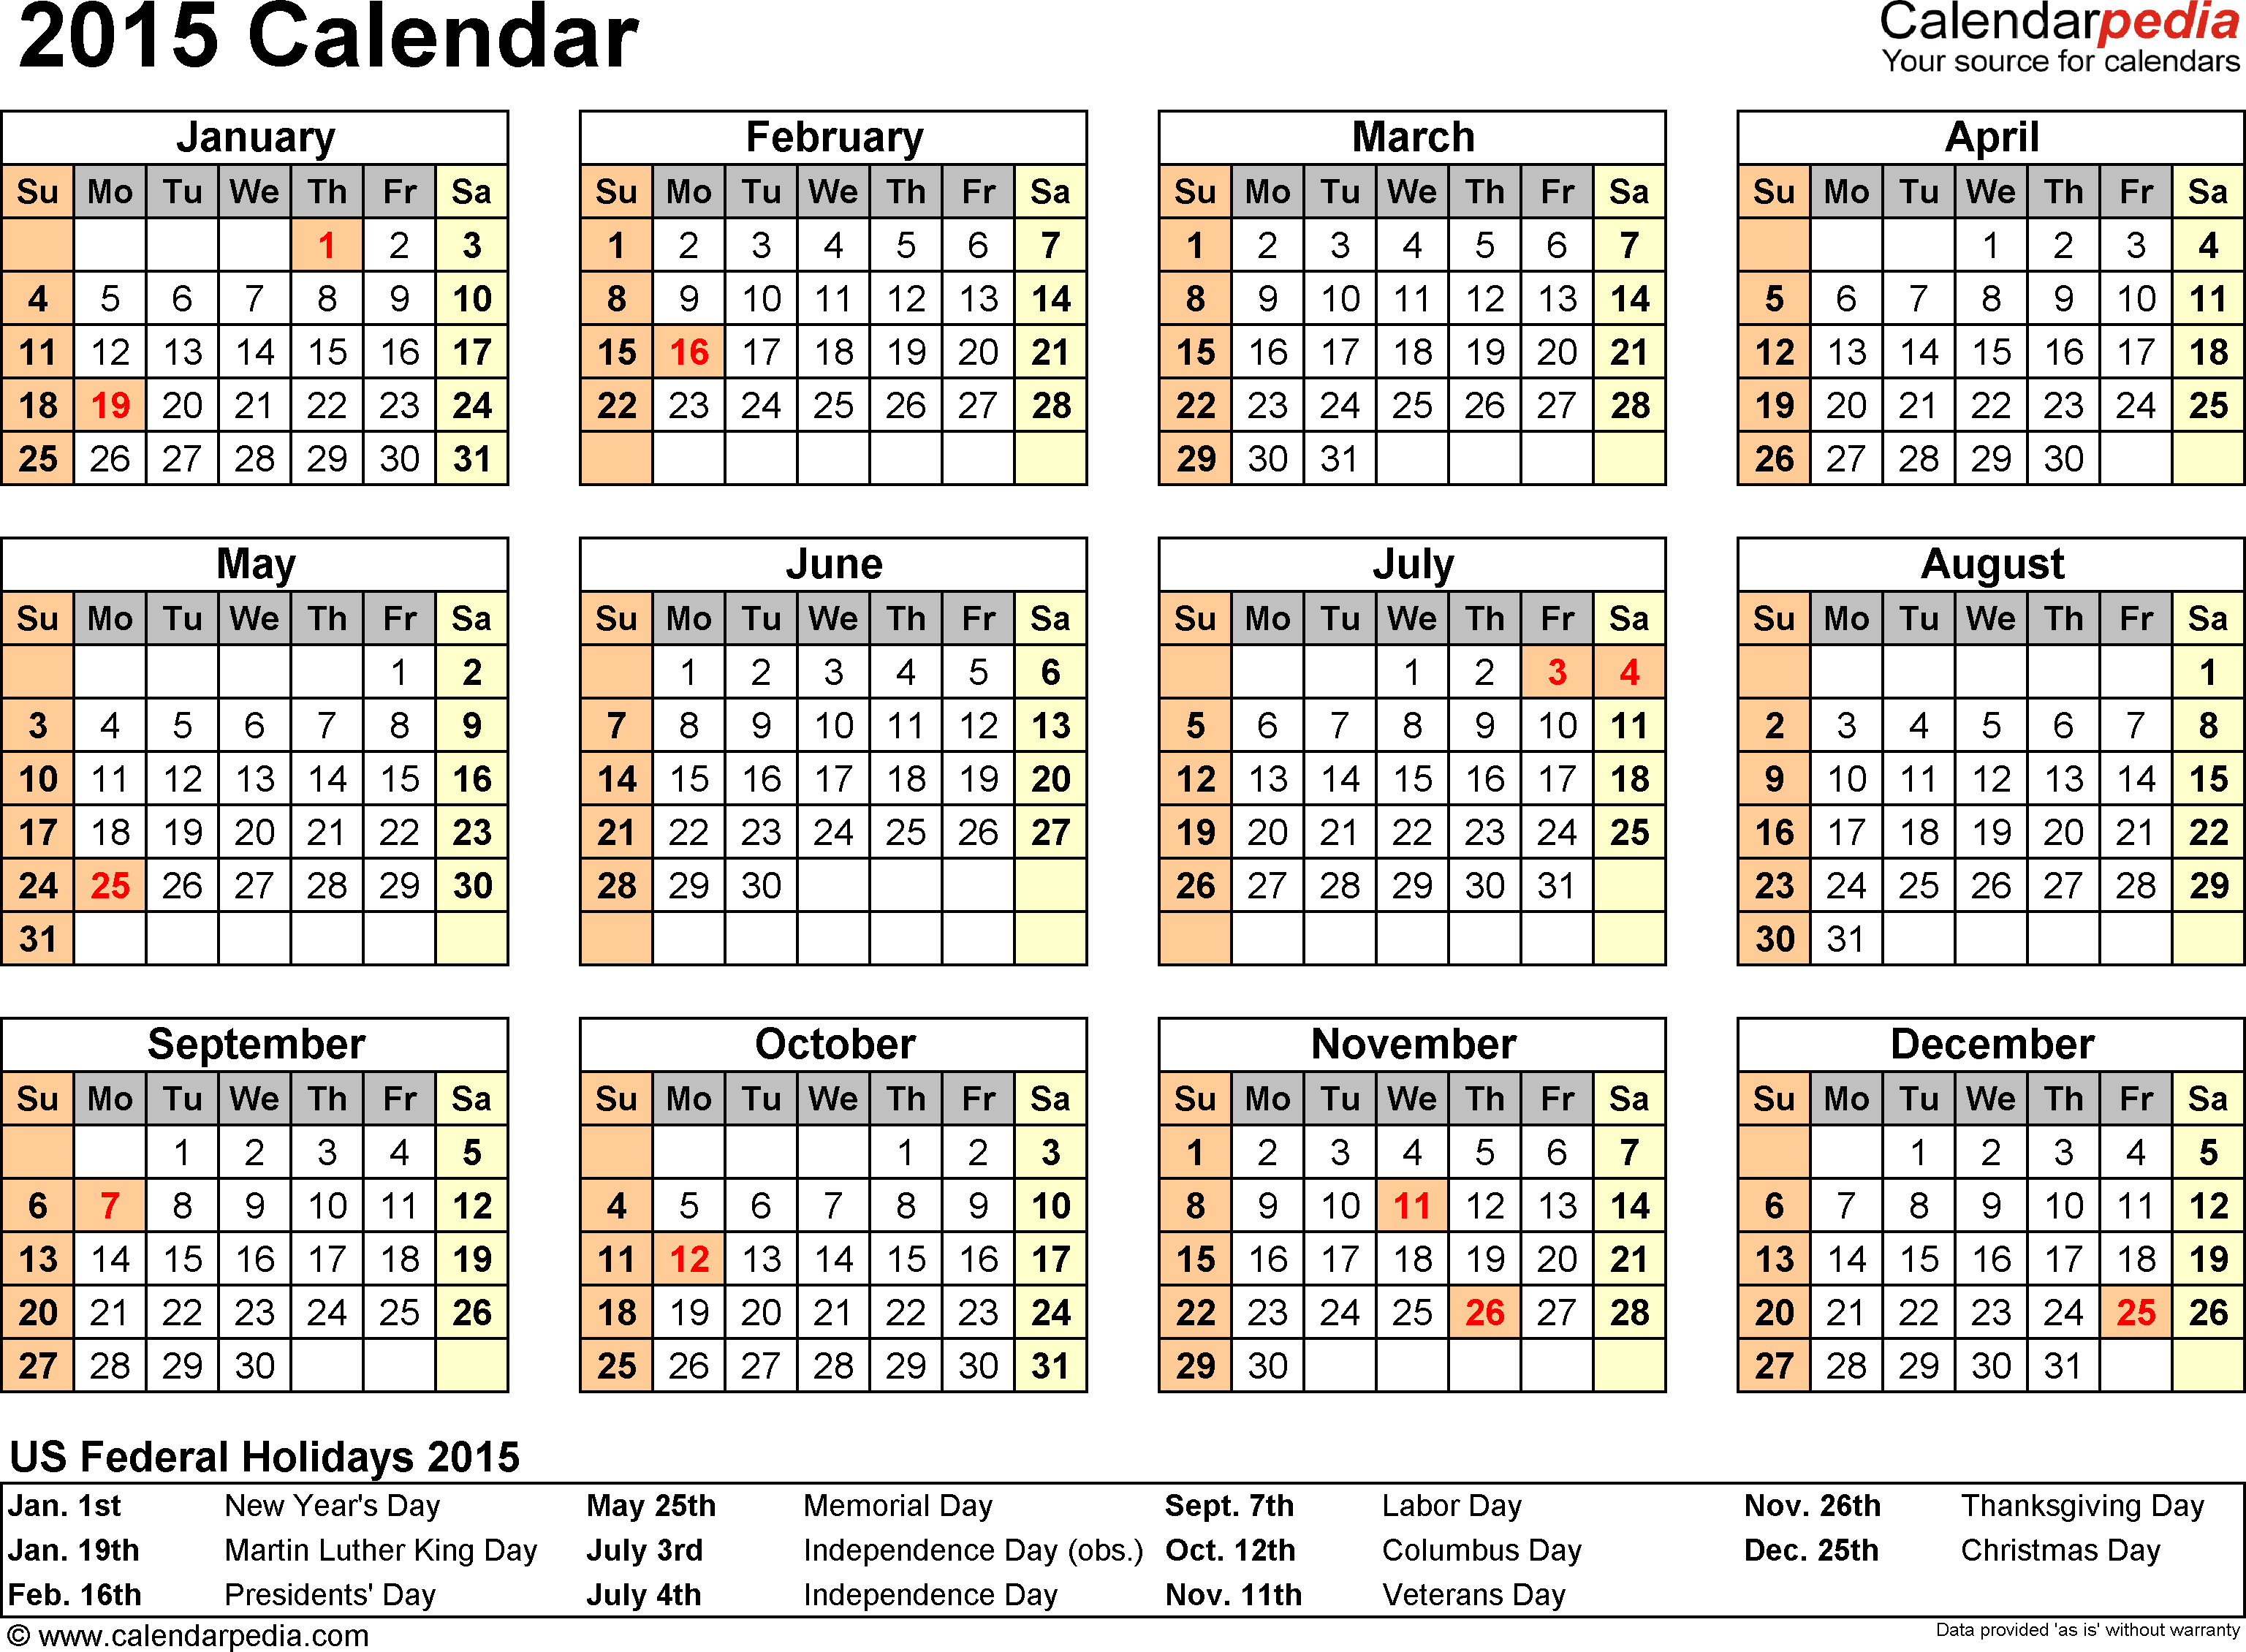 Download PDF template for 2015 calendar template 7: year overview, 1 page, with US federal holidays 2015, paper format: US letter